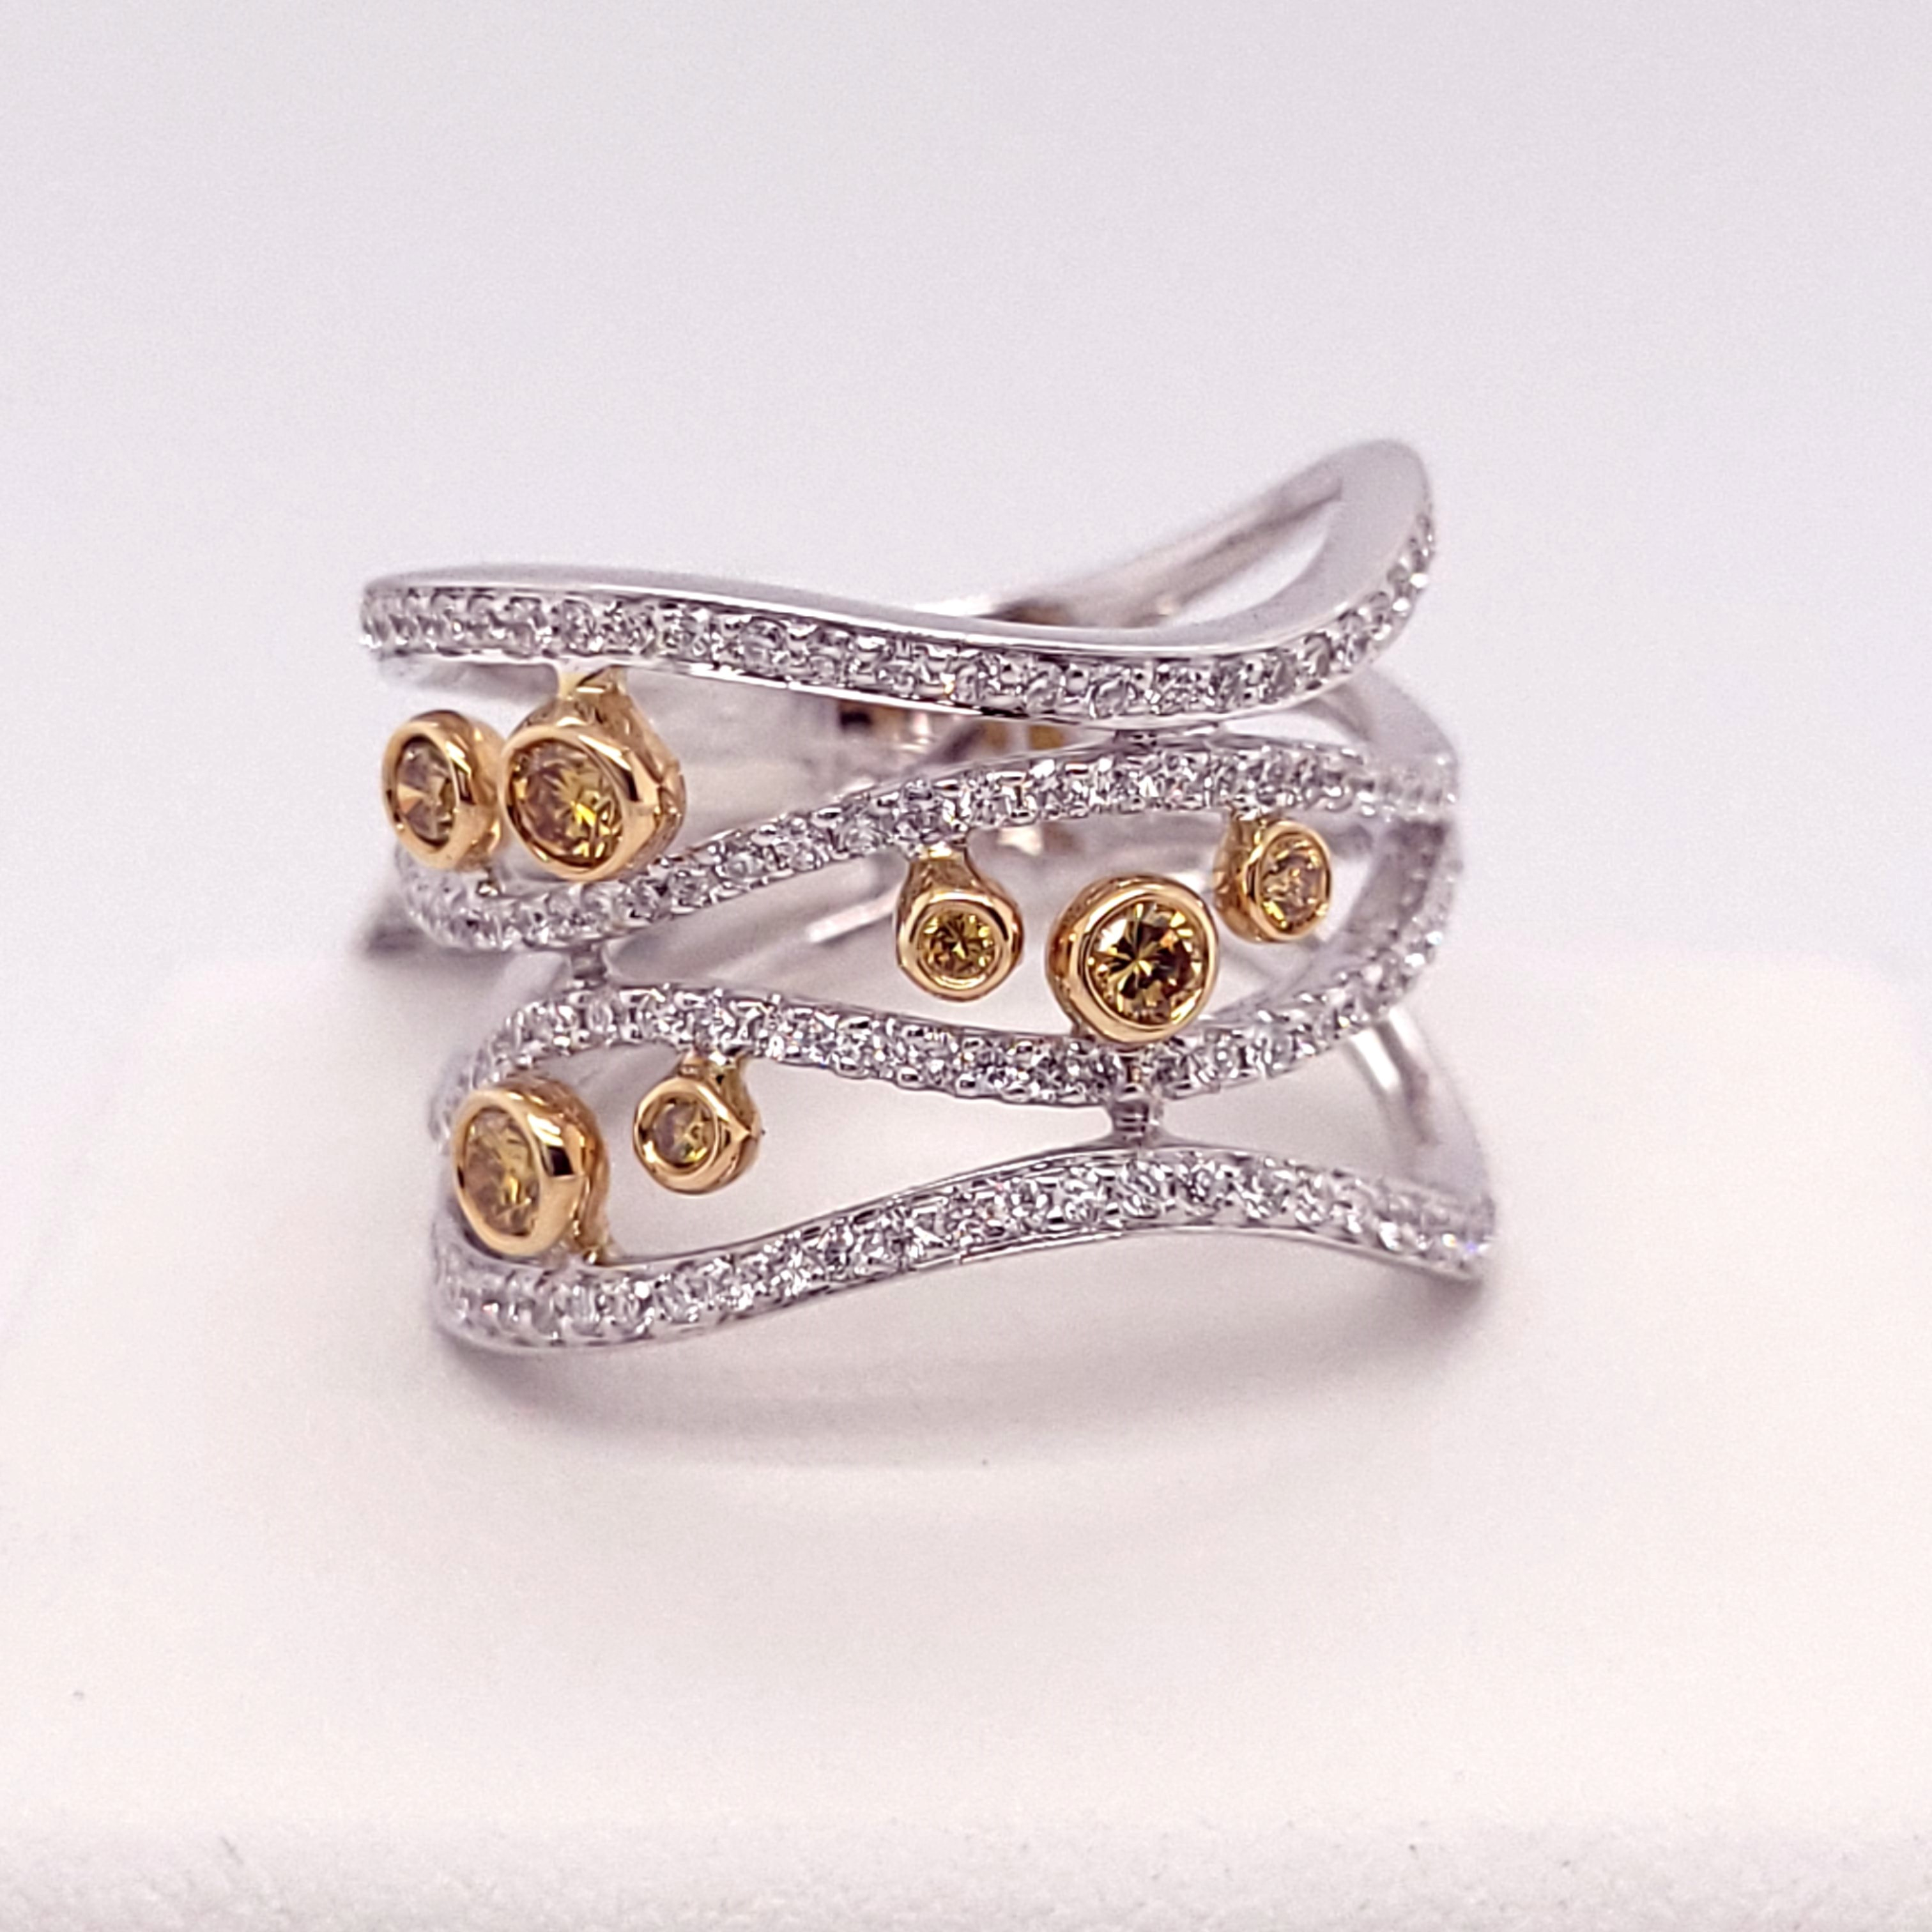 Women's Diamond Fashion Rings - 001-130-00013 - image #2